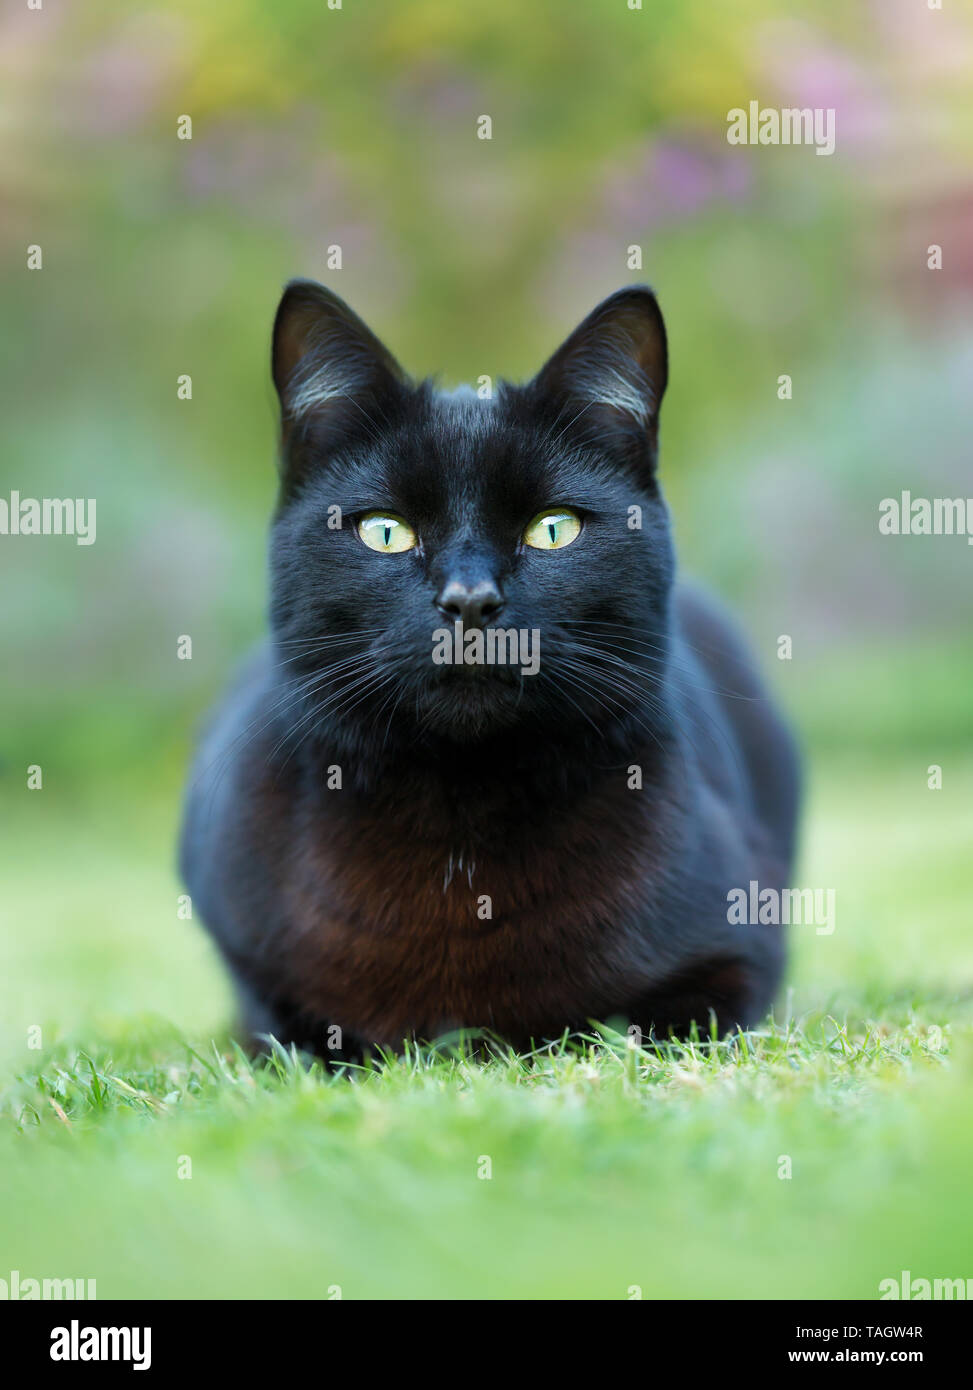 Close up of a black cat lying on grass in the garden, UK. - Stock Image